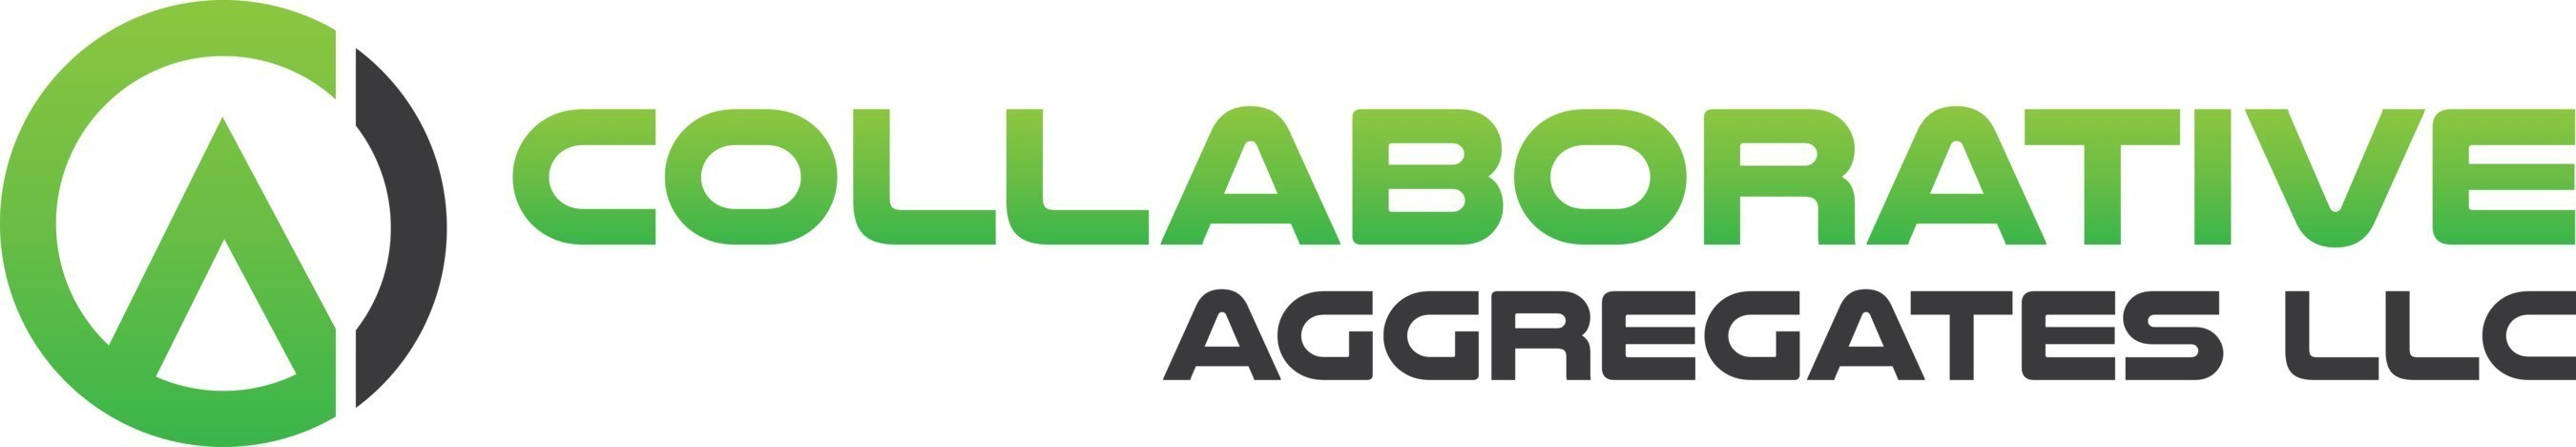 Collaborative Aggregates, LLC was established in 2014 to manufacture, market and sell engineered construction products that are developed by the Warner Babcock Institute for Green Chemistry.  These construction and infrastructure materials adhere to the principles of Green Chemistry and as such are high-performing, cost-competitive and easy-to-use with dramatically improved human and environmental safety profiles.   For more information please visit: http://www.collaborativeaggregates.com